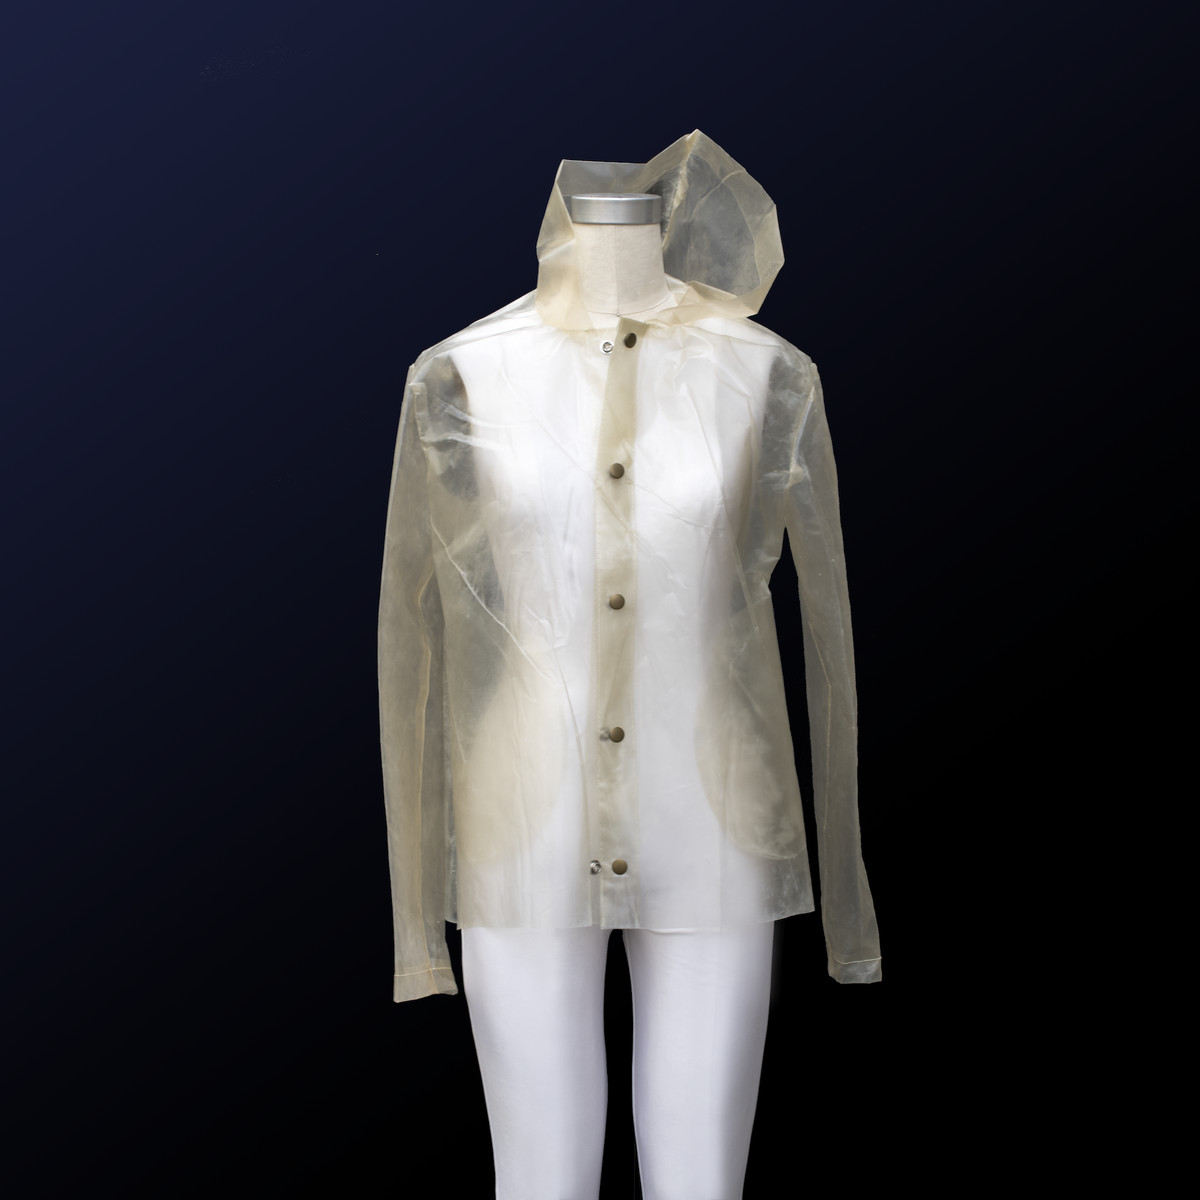 A transparent raincoat with a yellow hue made from algae plastic